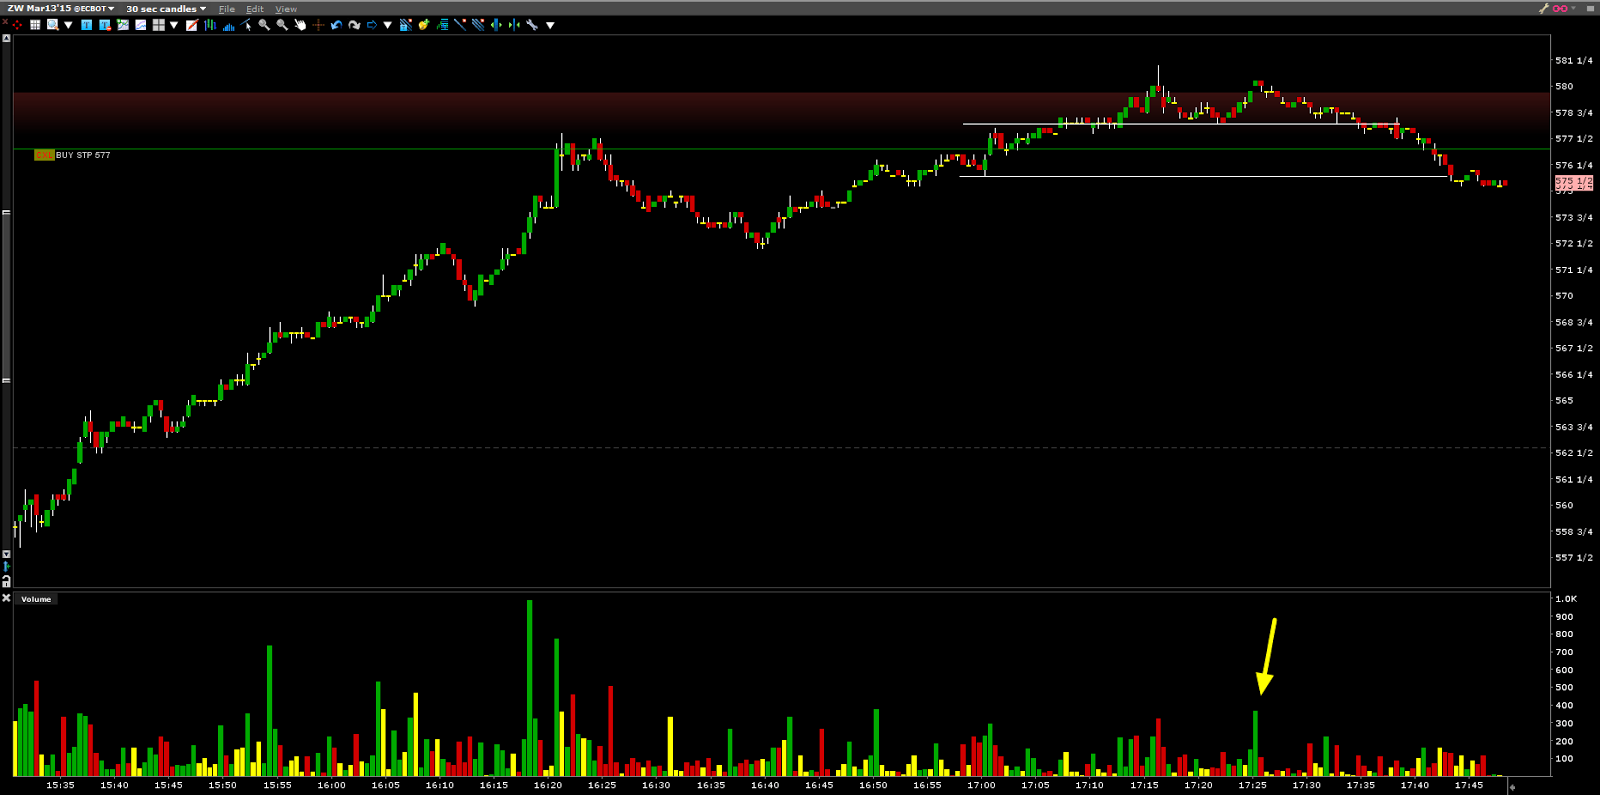 Scalping futures can be a great way to hedge a big up day or just pass the pass the time. There are techniques to scalping futures that if done right be fun, profitable, and protect your existing positions. If done wrong they can be detrimental.